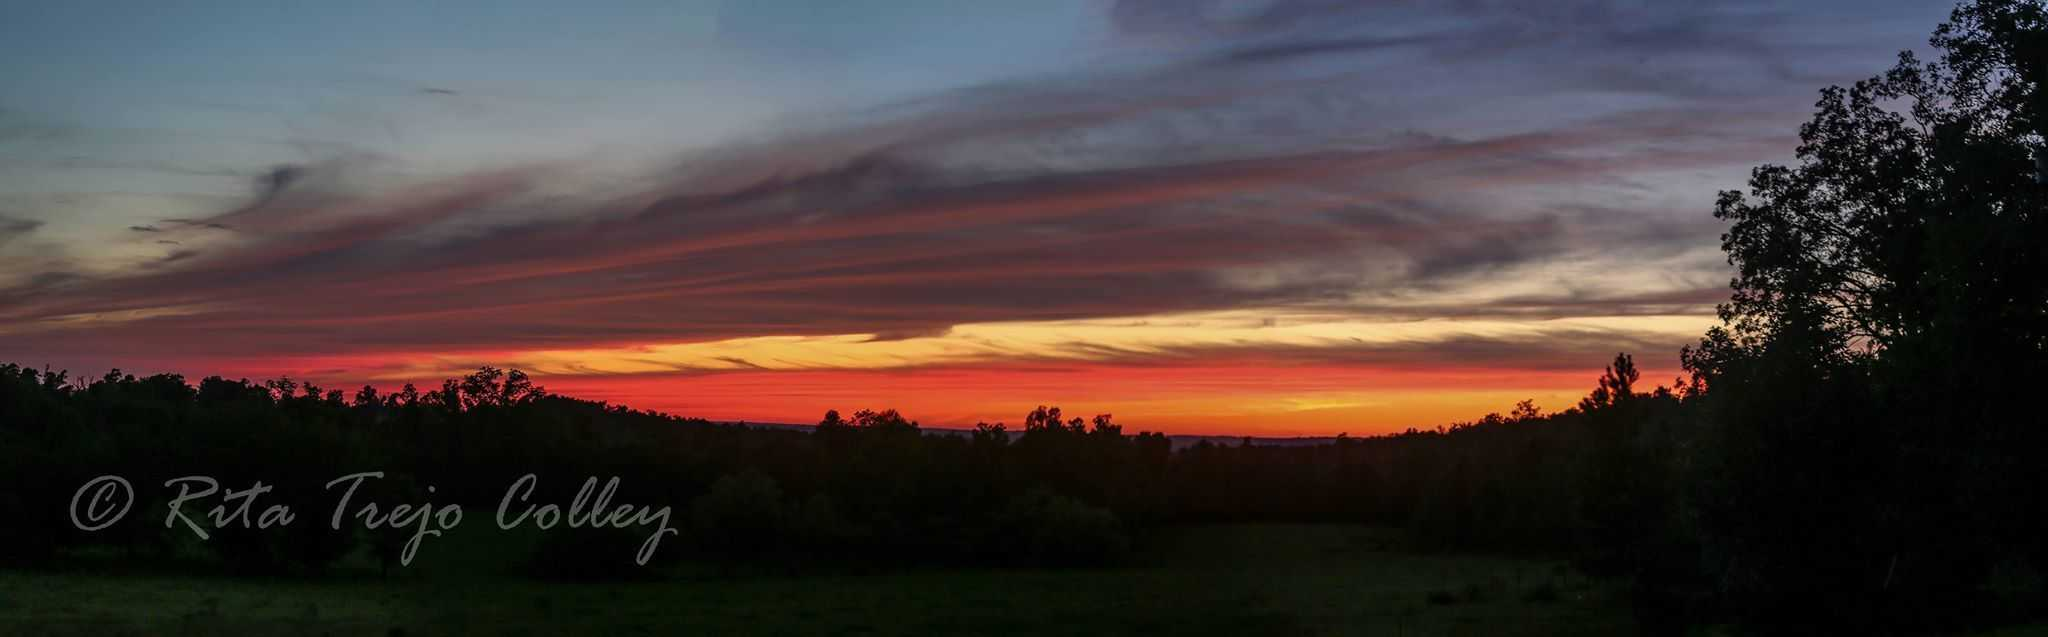 Panorama of the gorgeous sunset in Kentucky tonight.